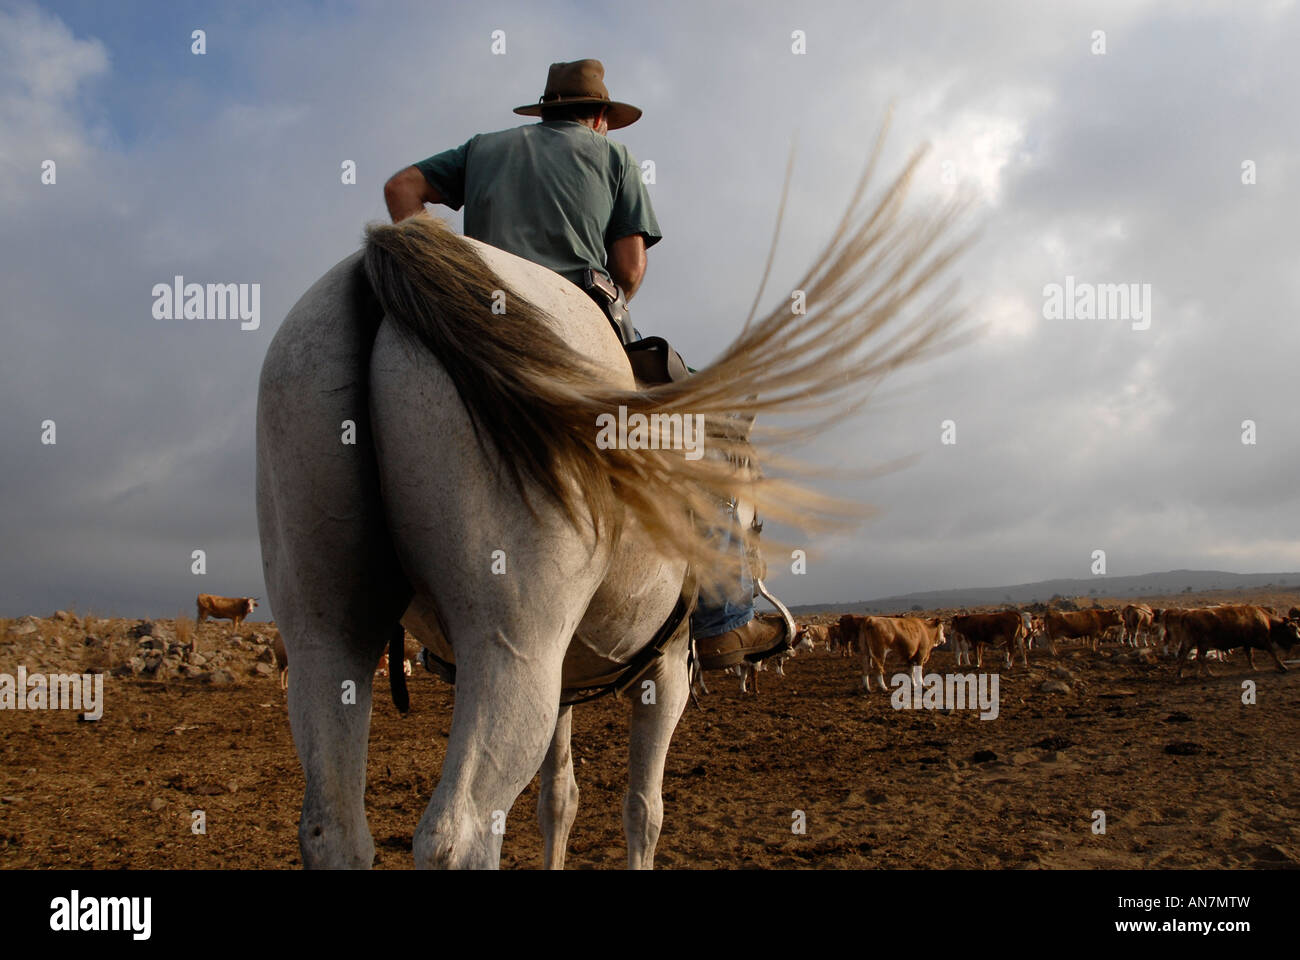 An Israeli cattle herder wearing a pistol mounted on a horse in the Golan heights northern Israel Stock Photo